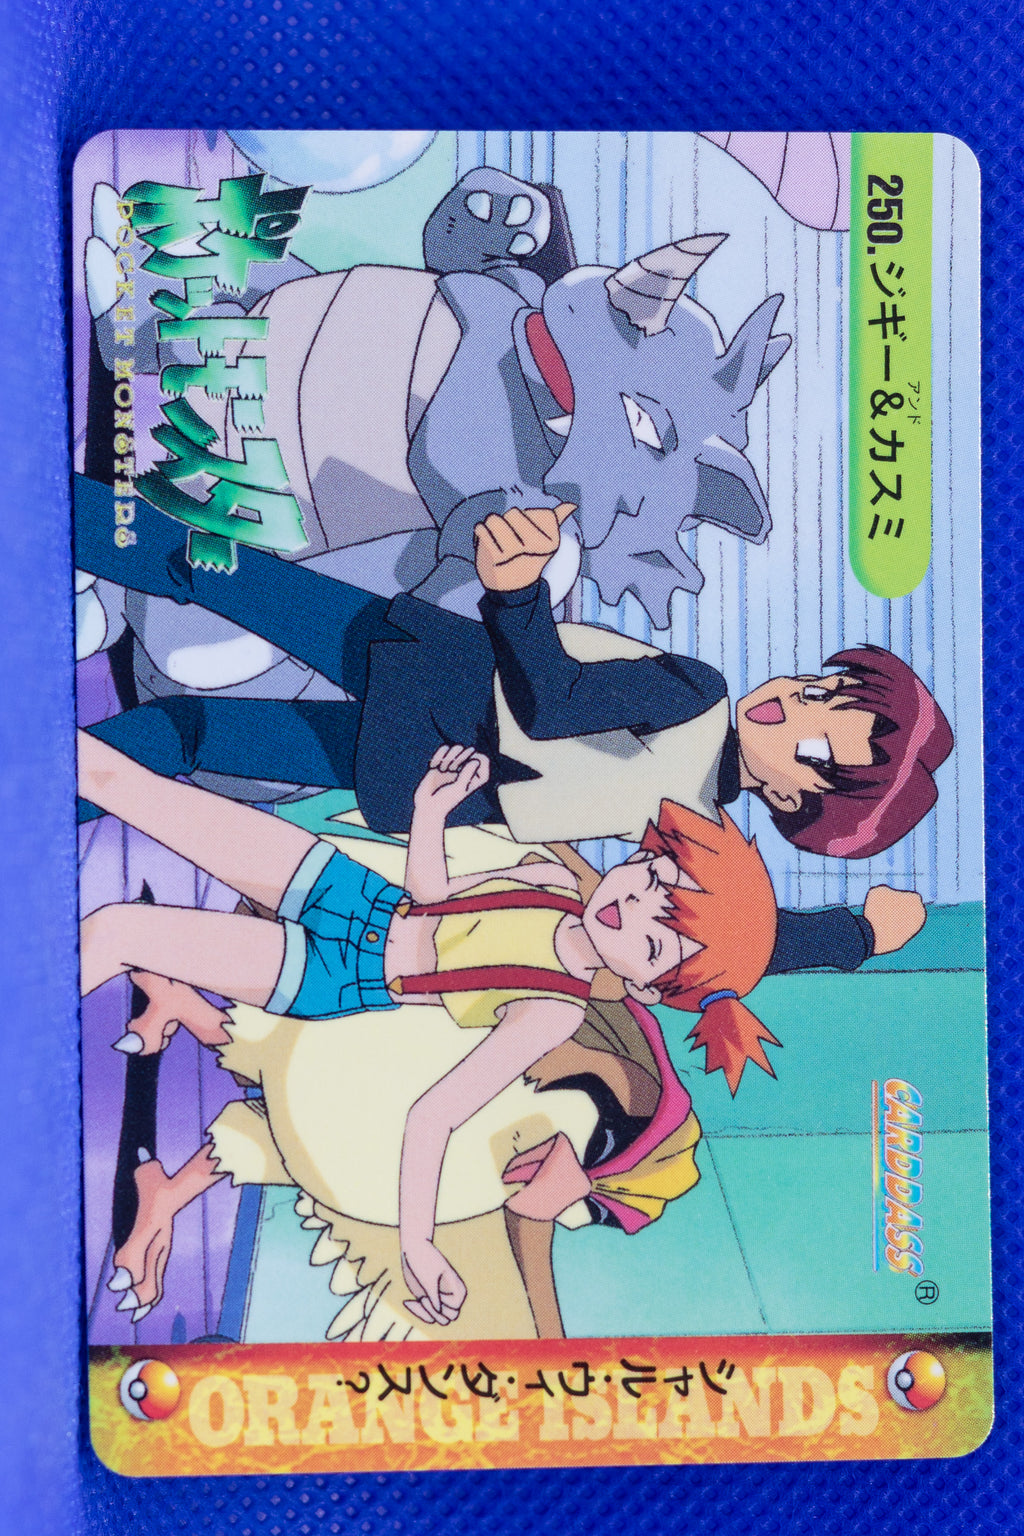 Bandai 1999 Anime Series 250 Misty, Pidgeotto & Others